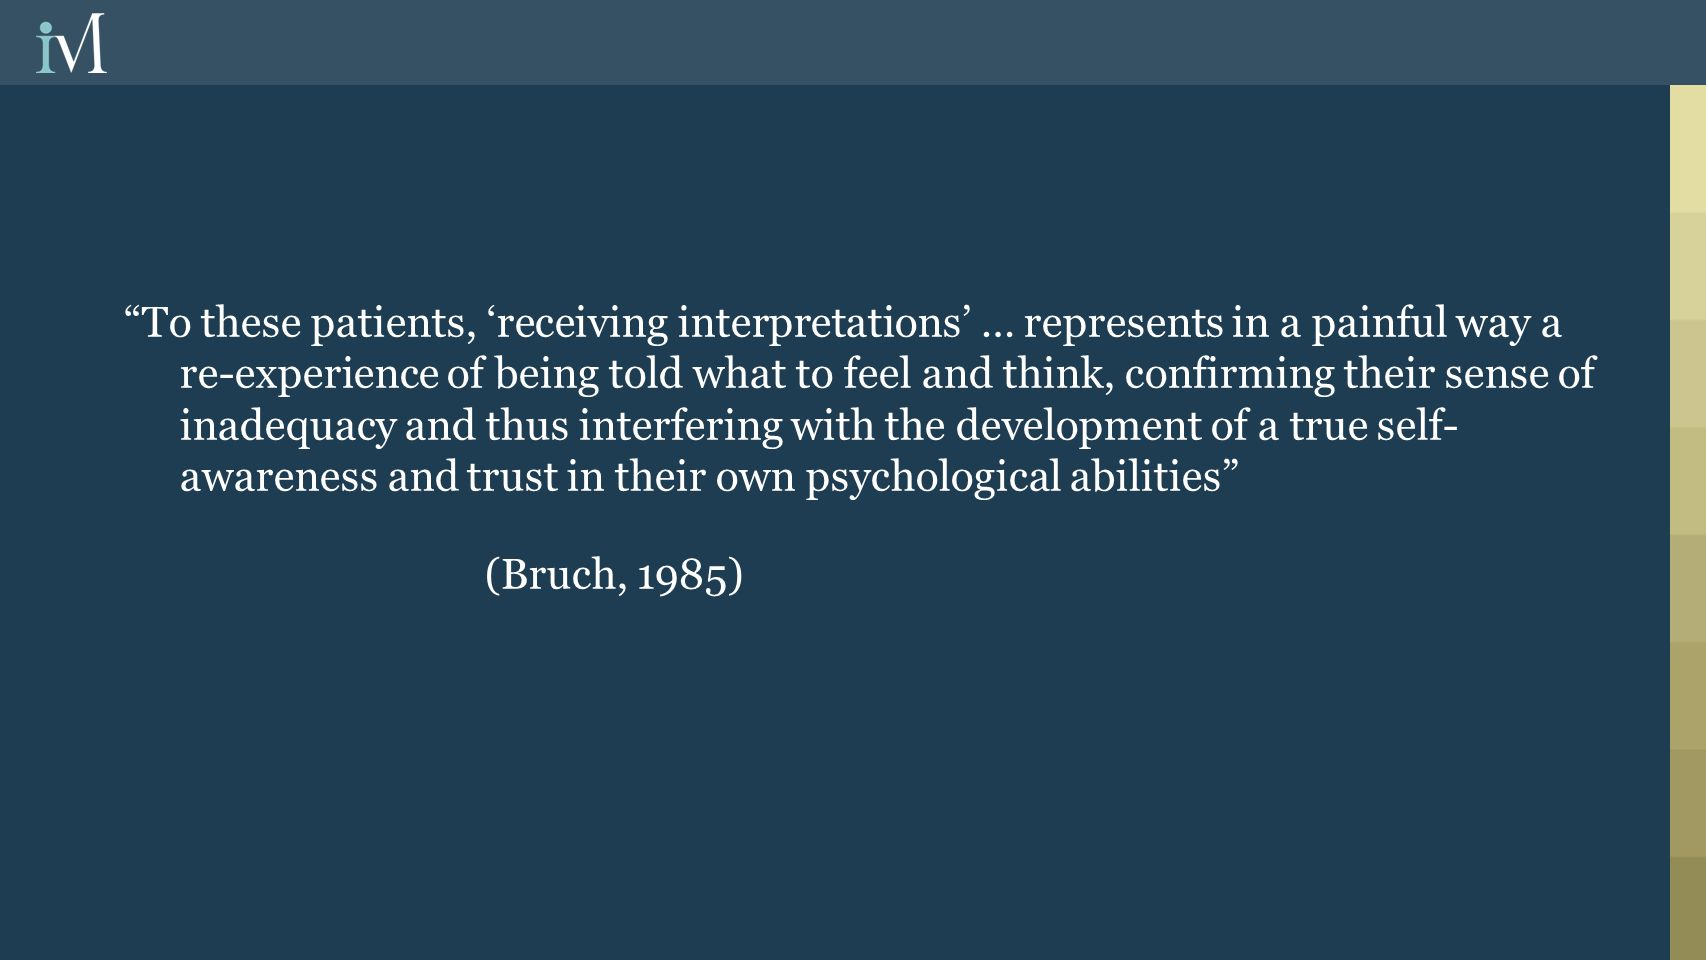 """To these patients, 'receiving interpretations' … represents in a painful way a re-experience of being told what to feel and think, confirming their s"